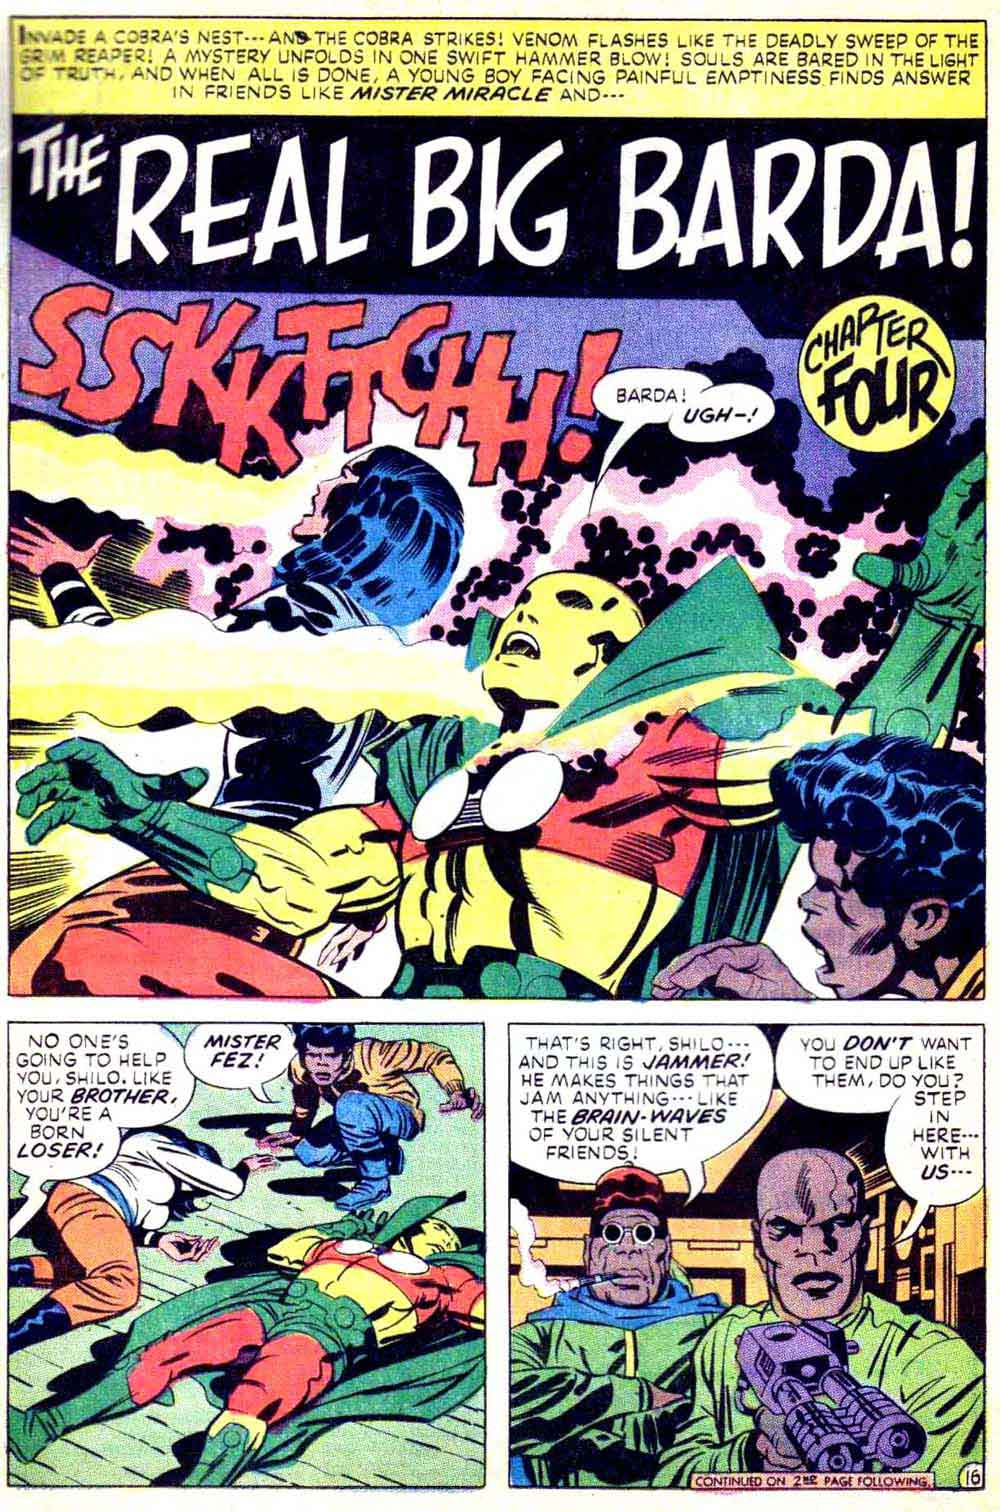 Mister Miracle v1 #15 dc bronze age comic book page art by Jack Kirby